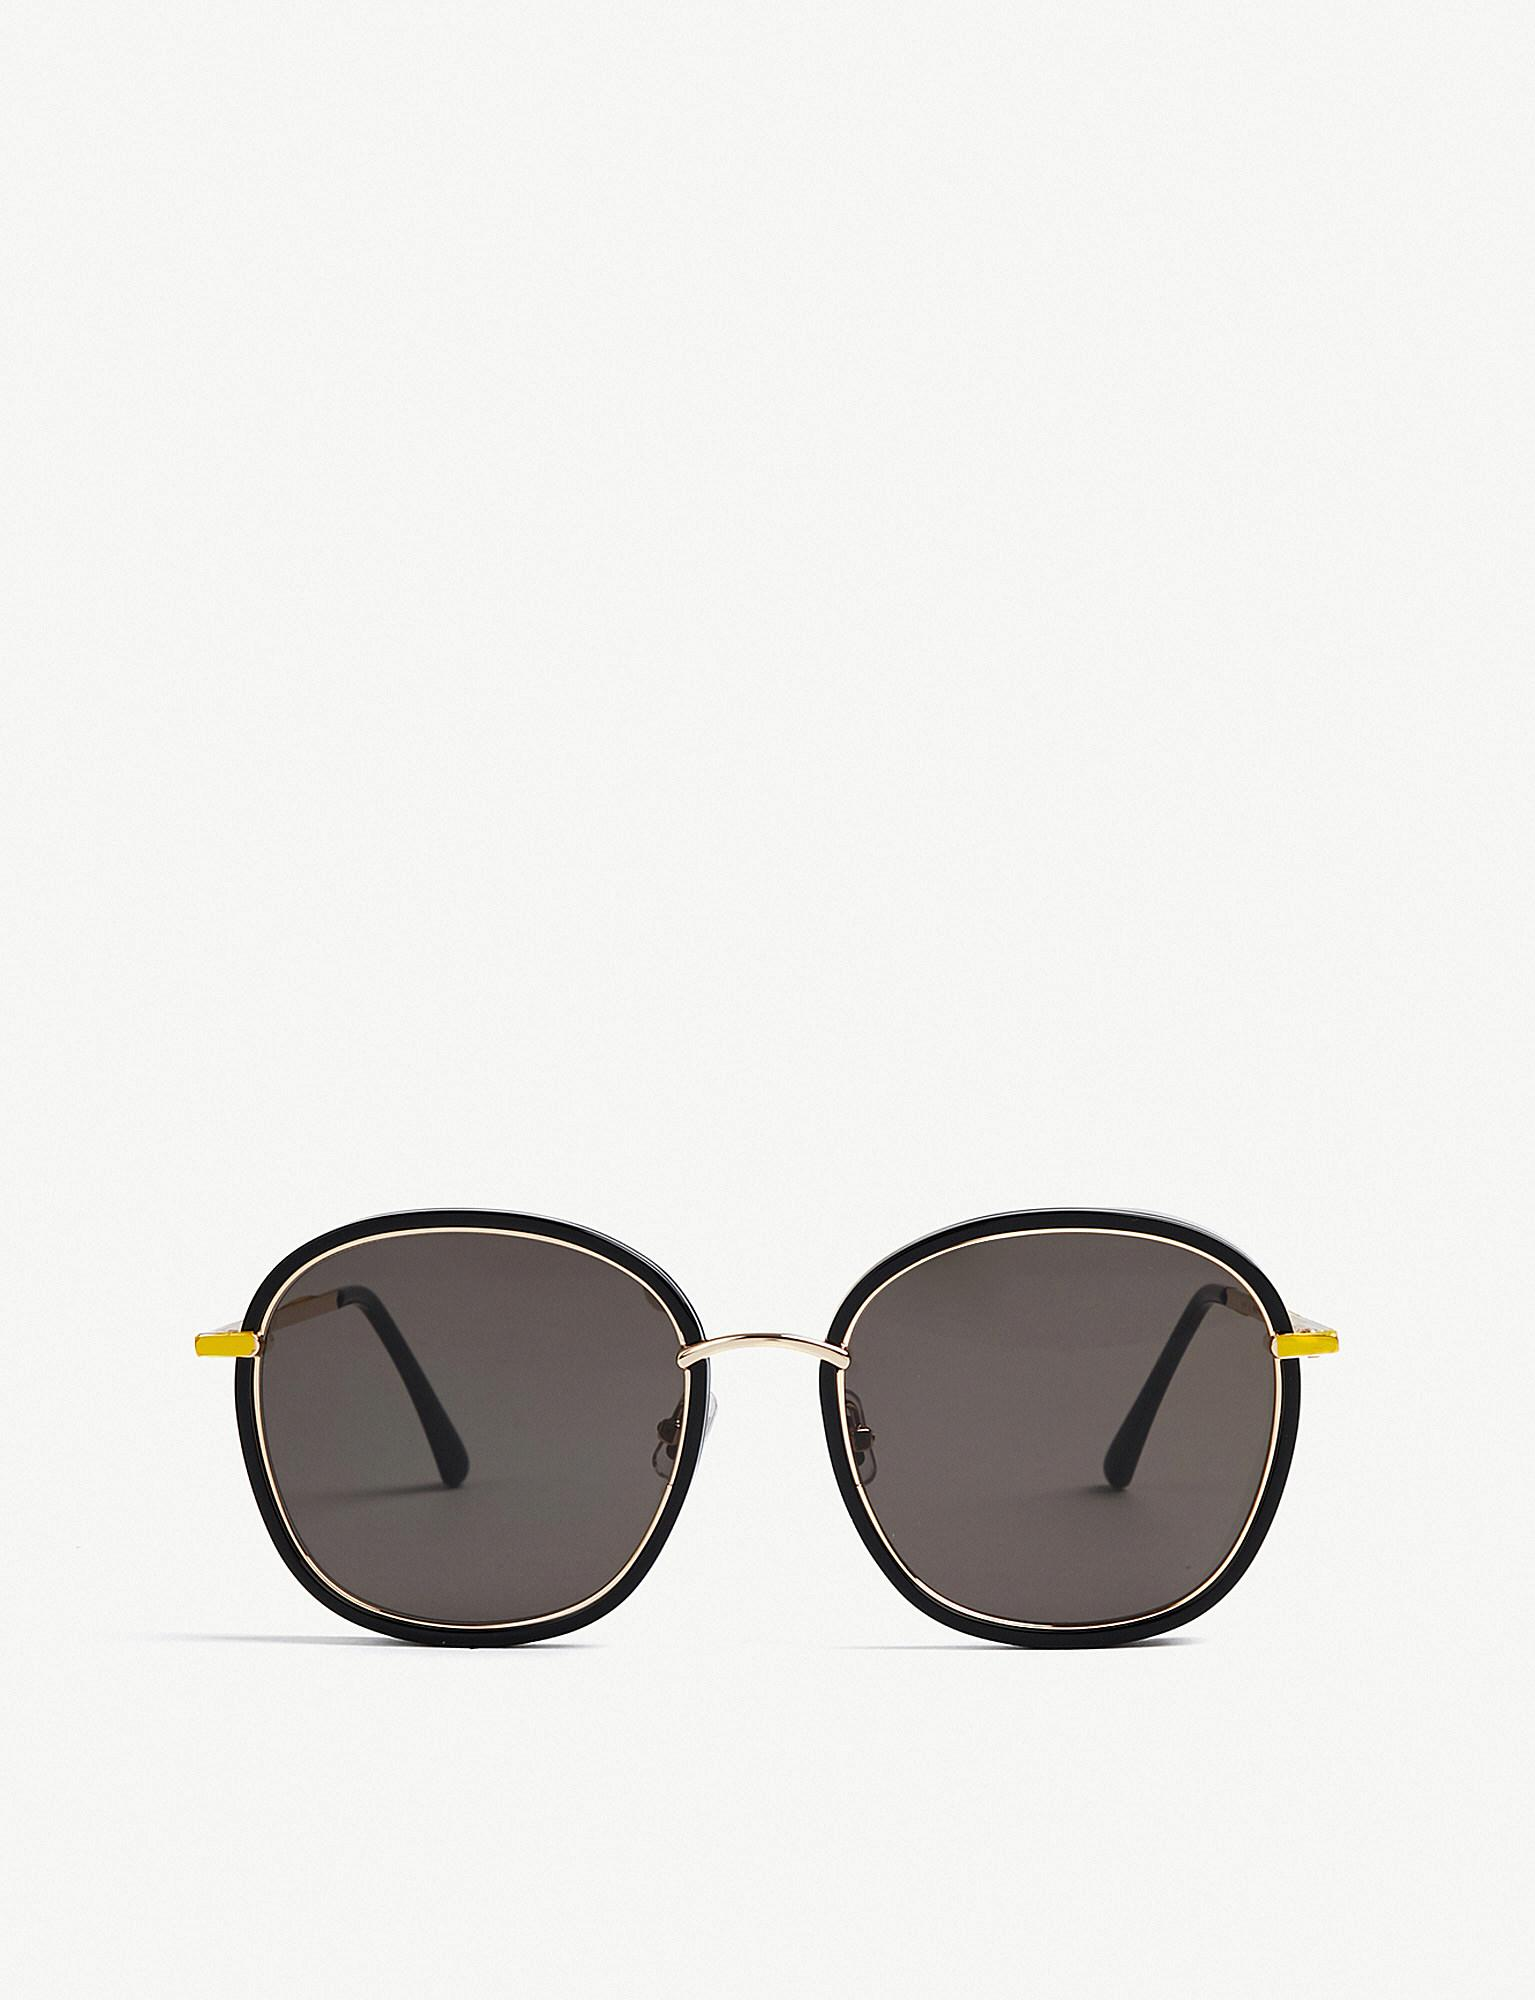 4020d6de0428 Gentle Monster Mad Crush Square-frame Sunglasses in Black - Lyst